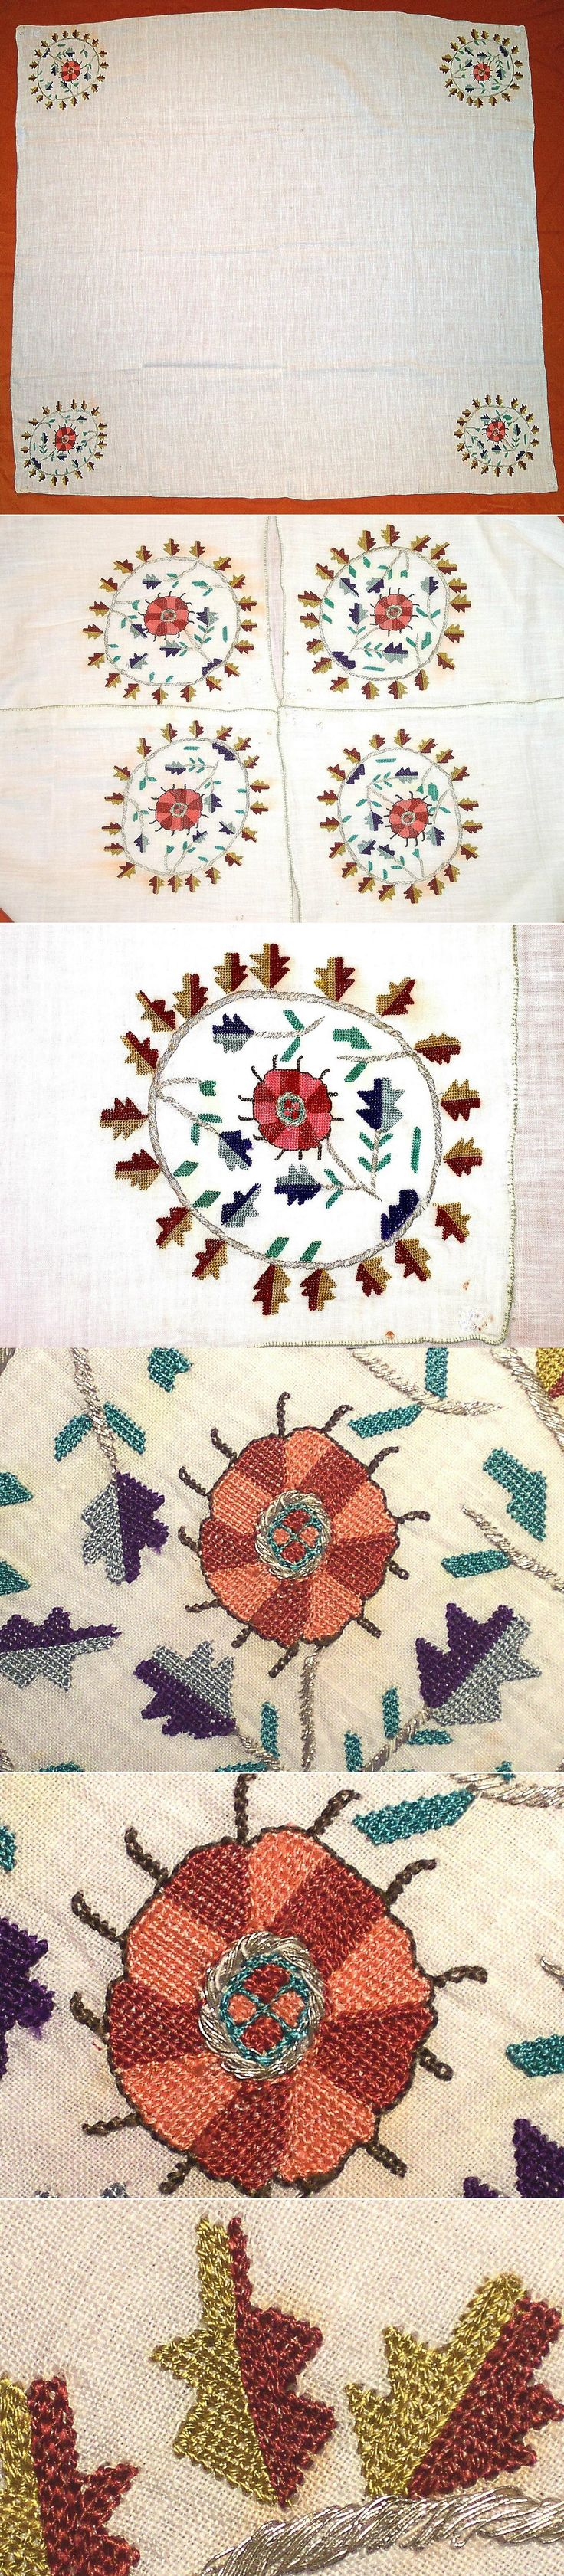 A 'çevre' (square kerchief; a decorative accessory, for the interior, but also used in costumes by both men and women).  From the Bursa province, 1900-1950.  'Two-sided' embroidery with polychrome silk and metallic (silver) threads on cotton (identical on both sides).  Stylized leaf and flower motifs, netted stitch technique.  (Kavak Collection of Anatolian Textiles -Antwerpen/Belgium).